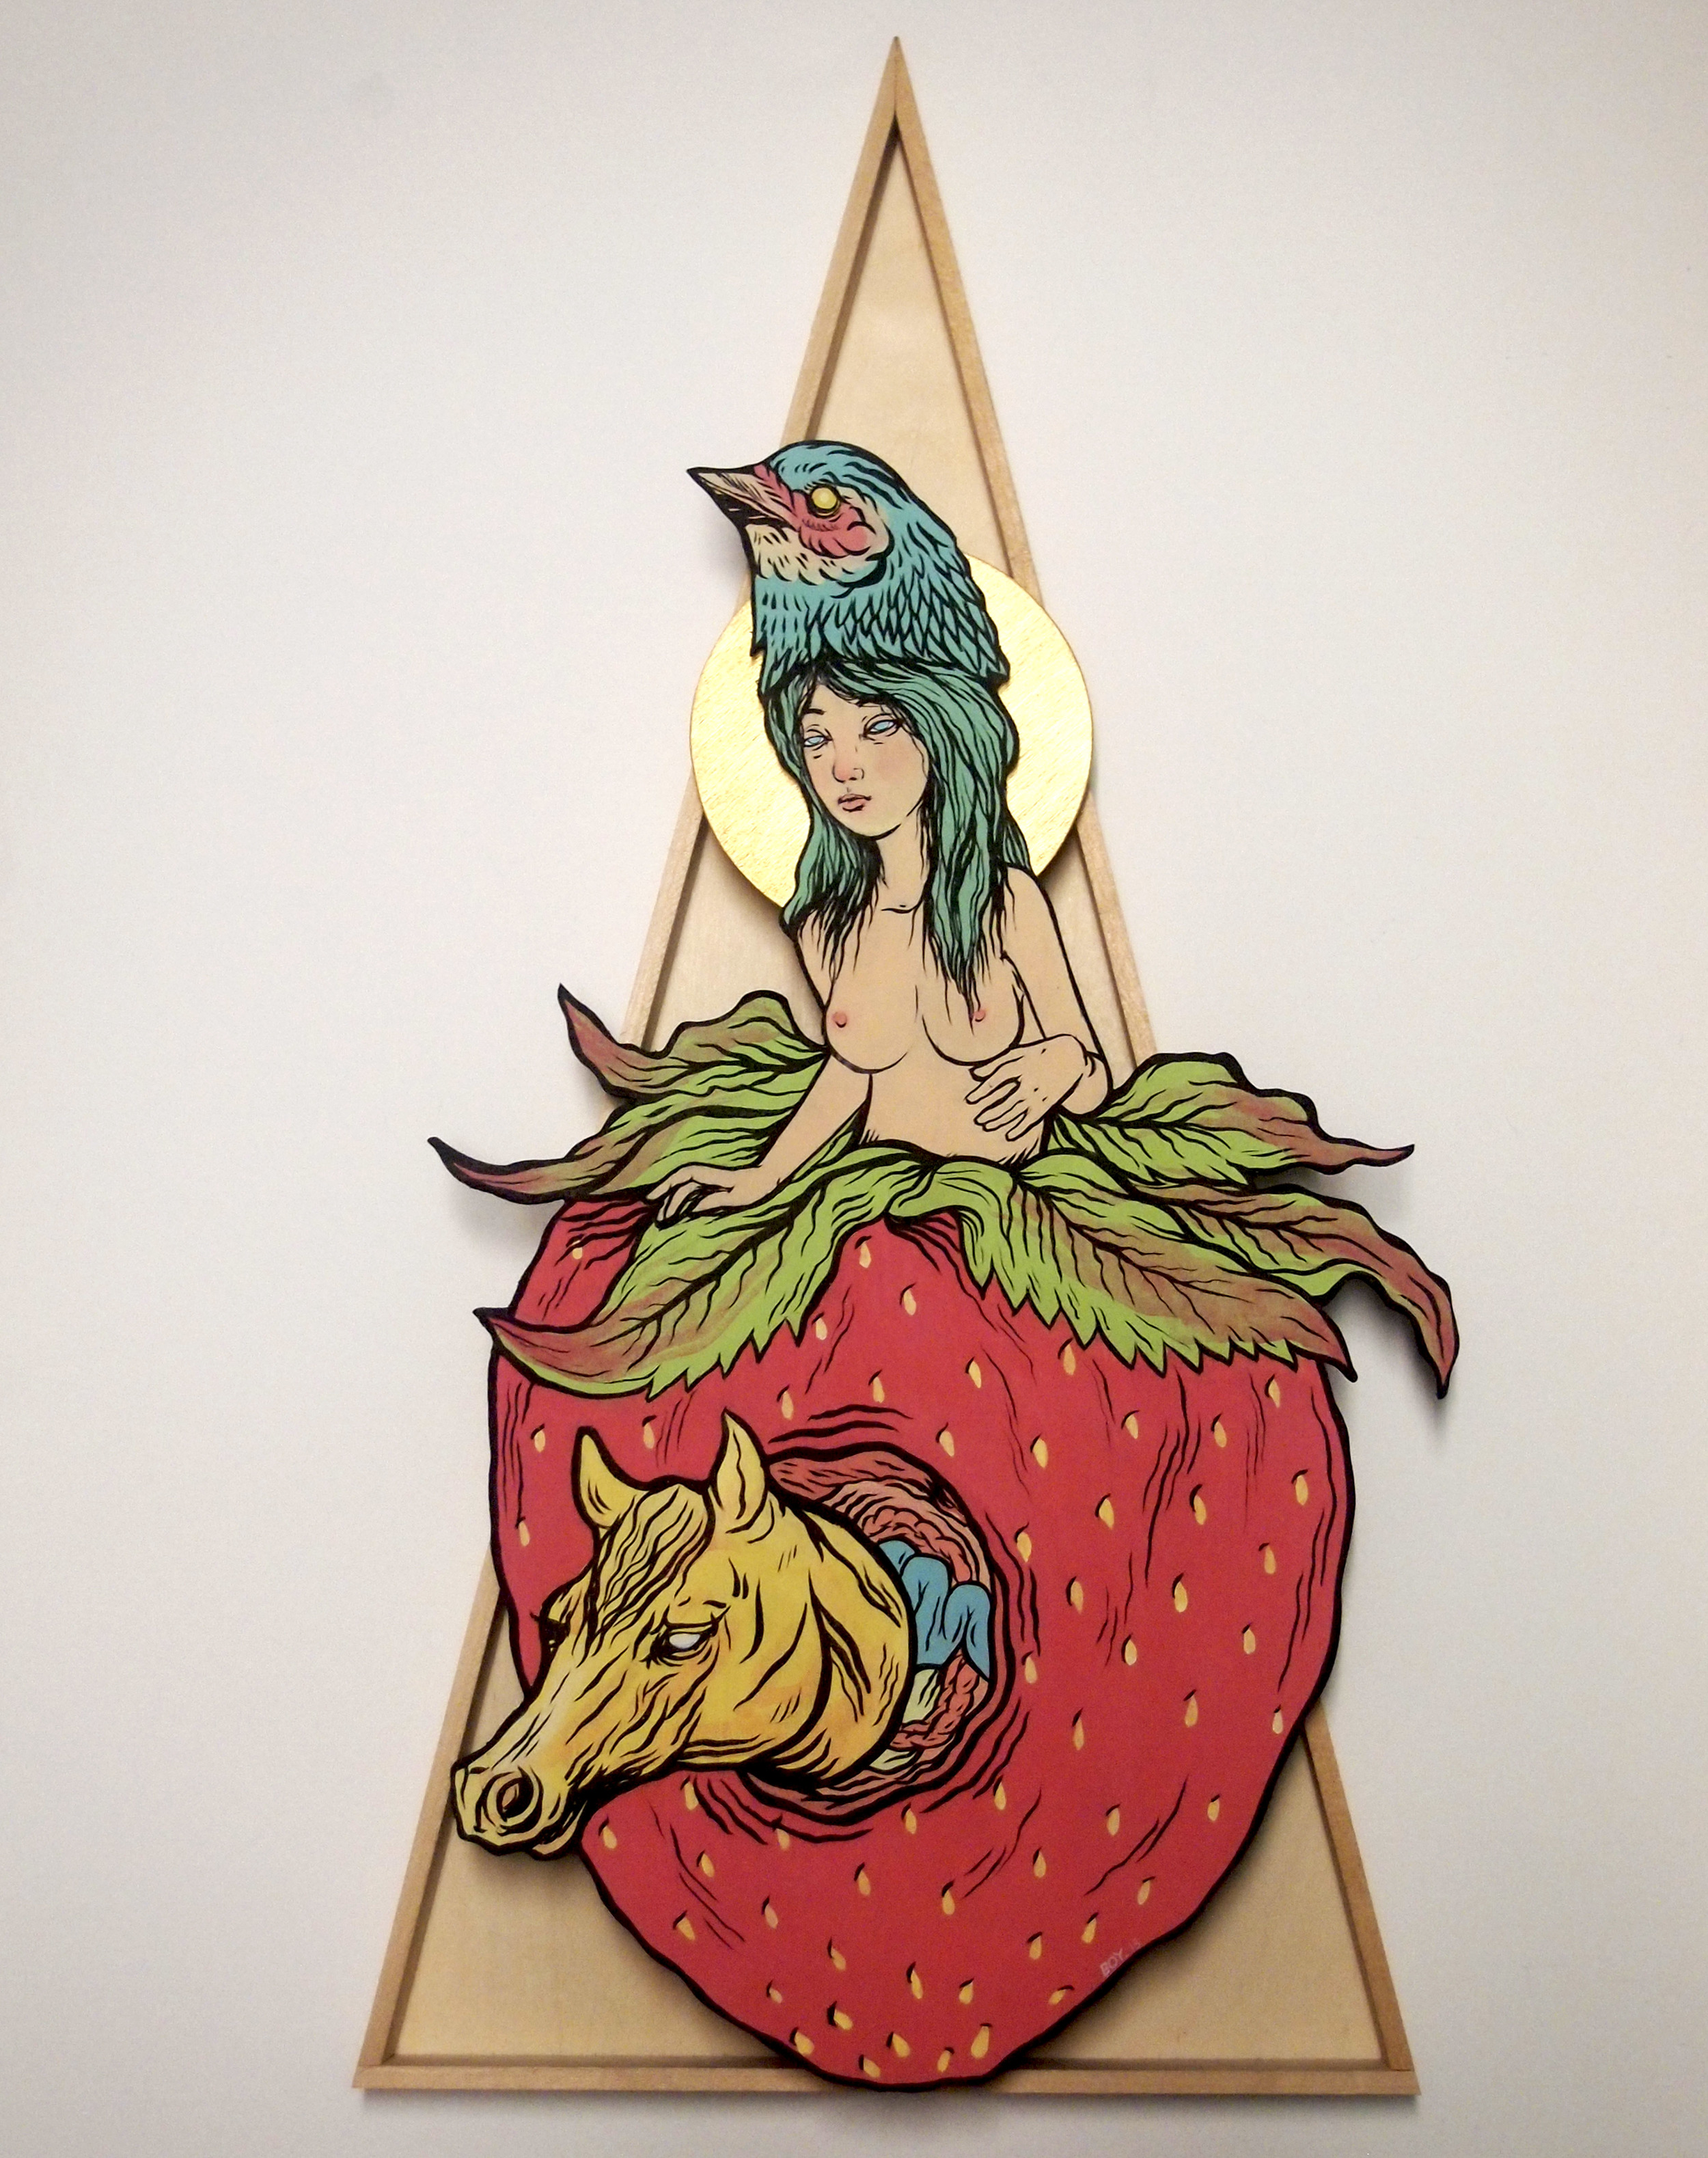 Fruits of Joy , 2013 [private collection NY, NY] Acrylic on Wood 10 x 13 x 3 in.